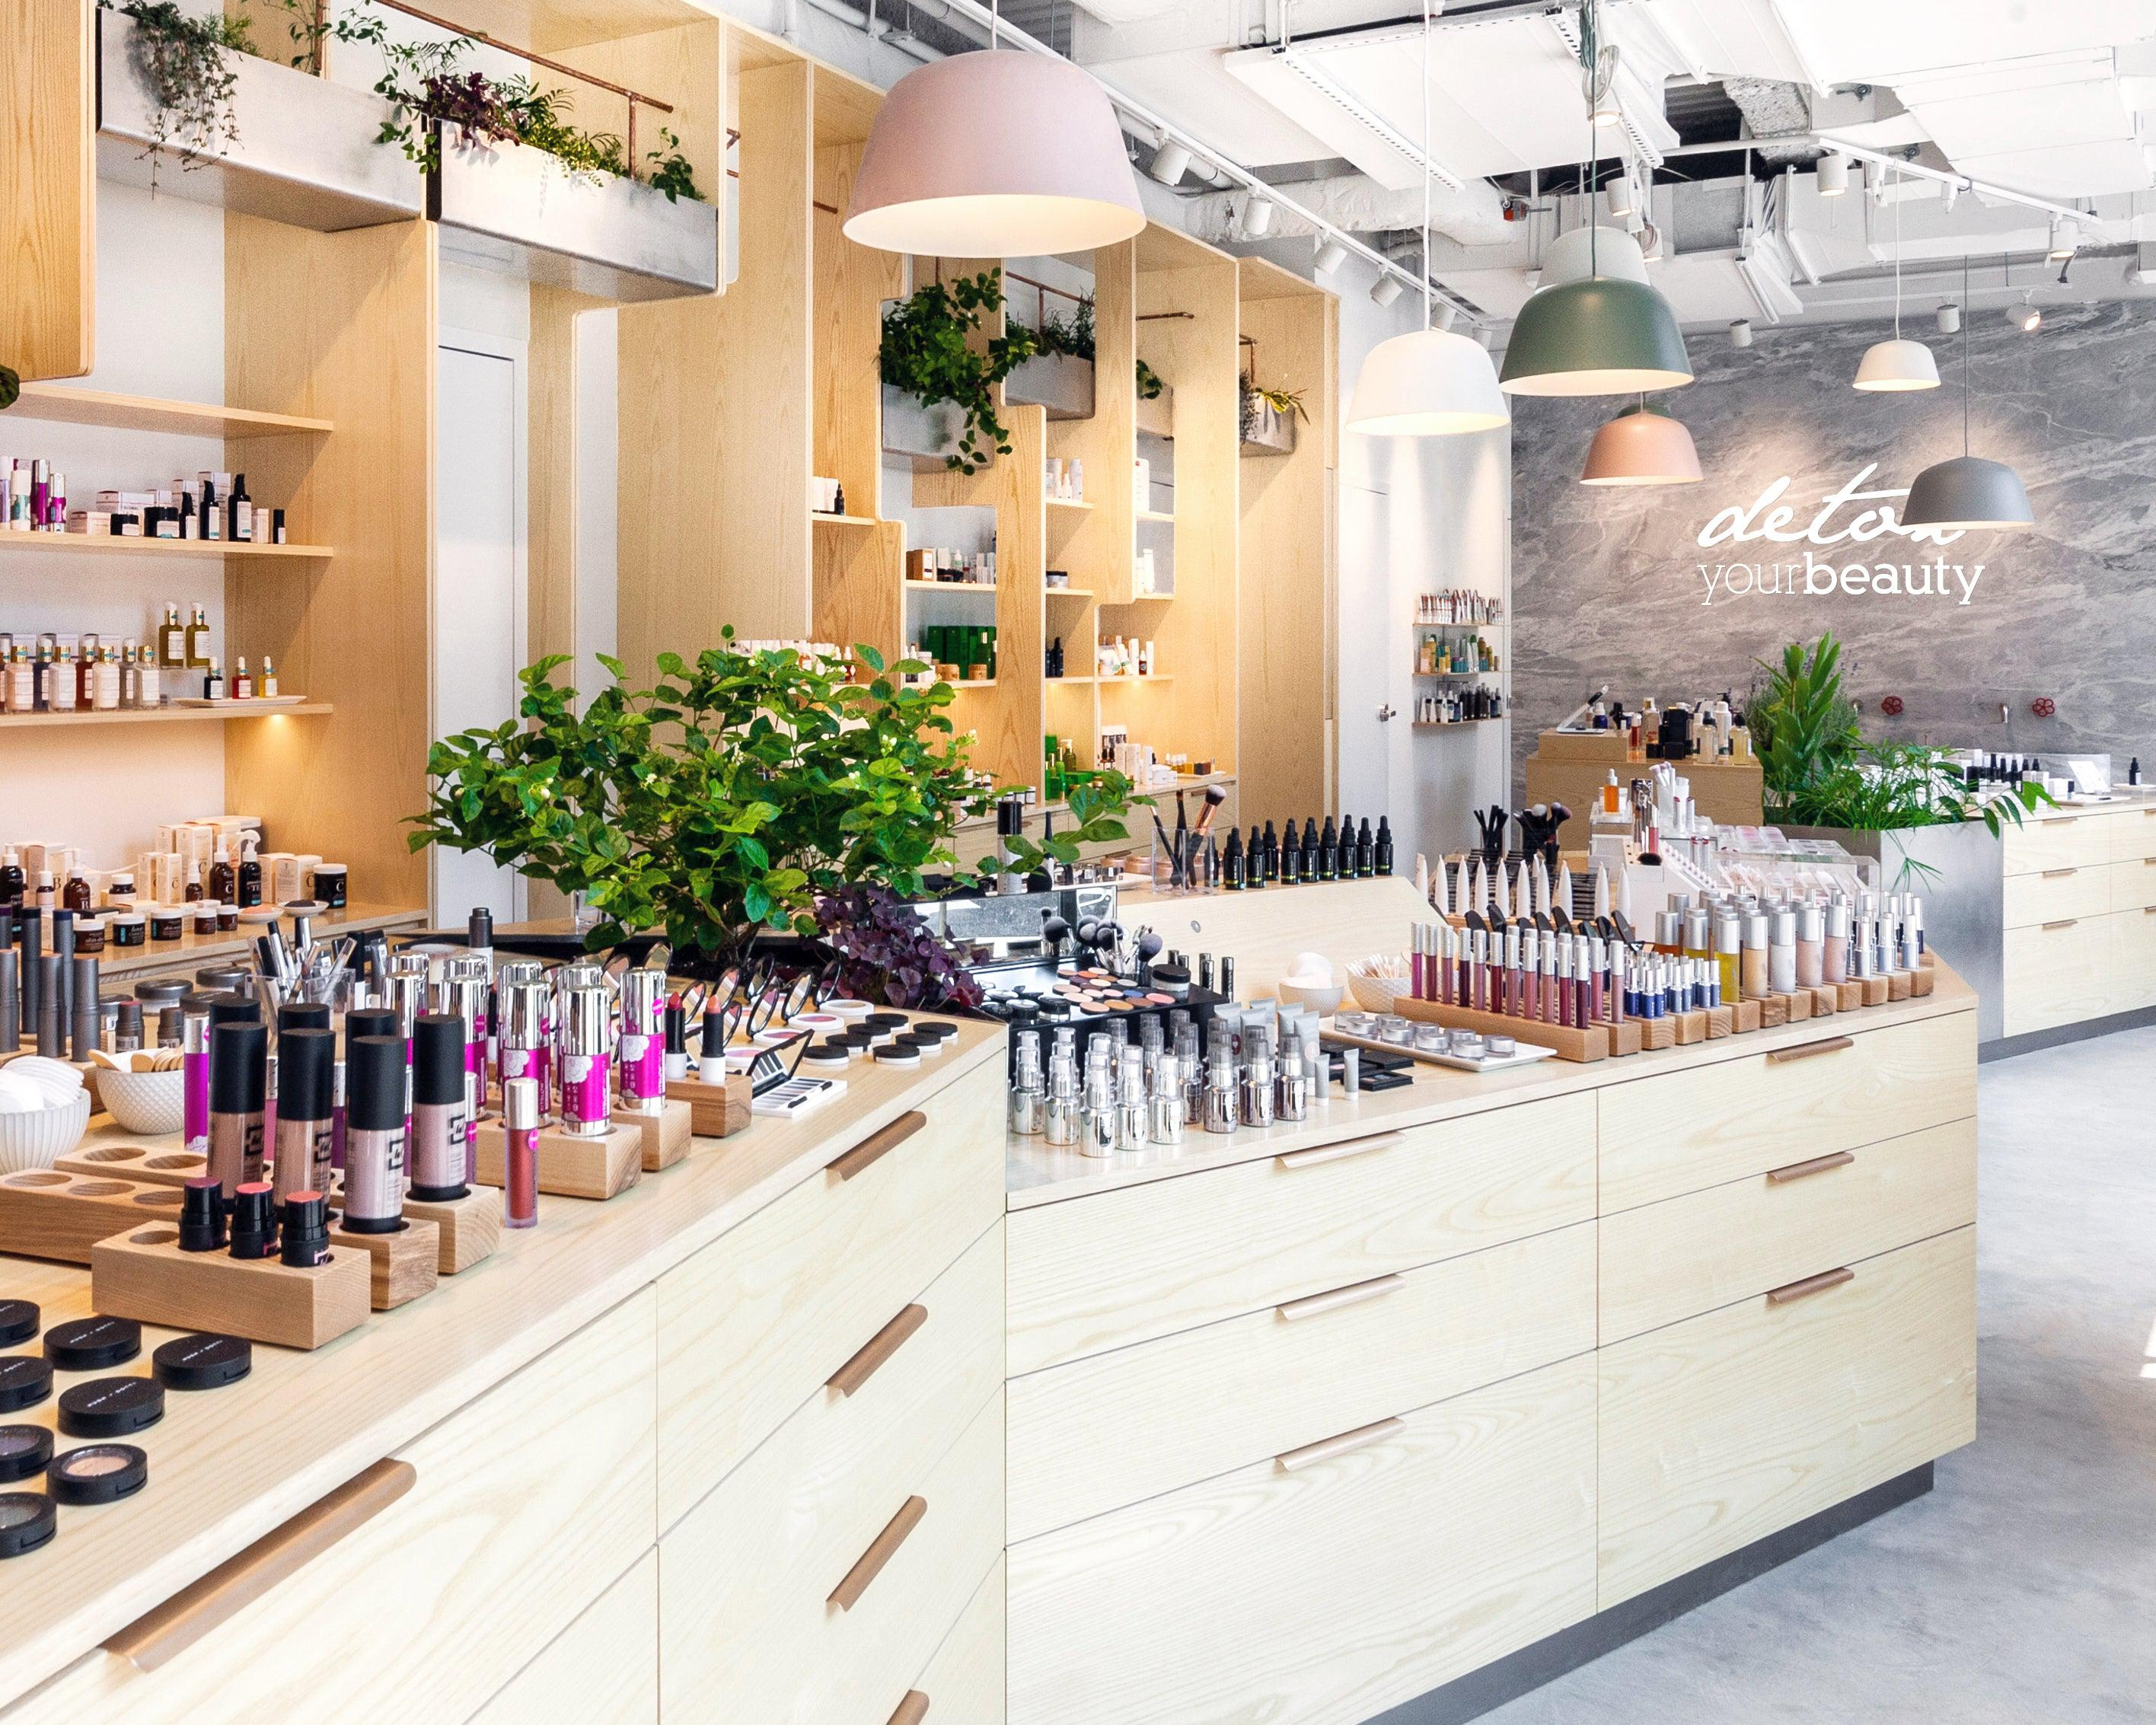 The Detox Market New York City Flagship Store for Green Beauty, Skincare, Makeup, and Wellness